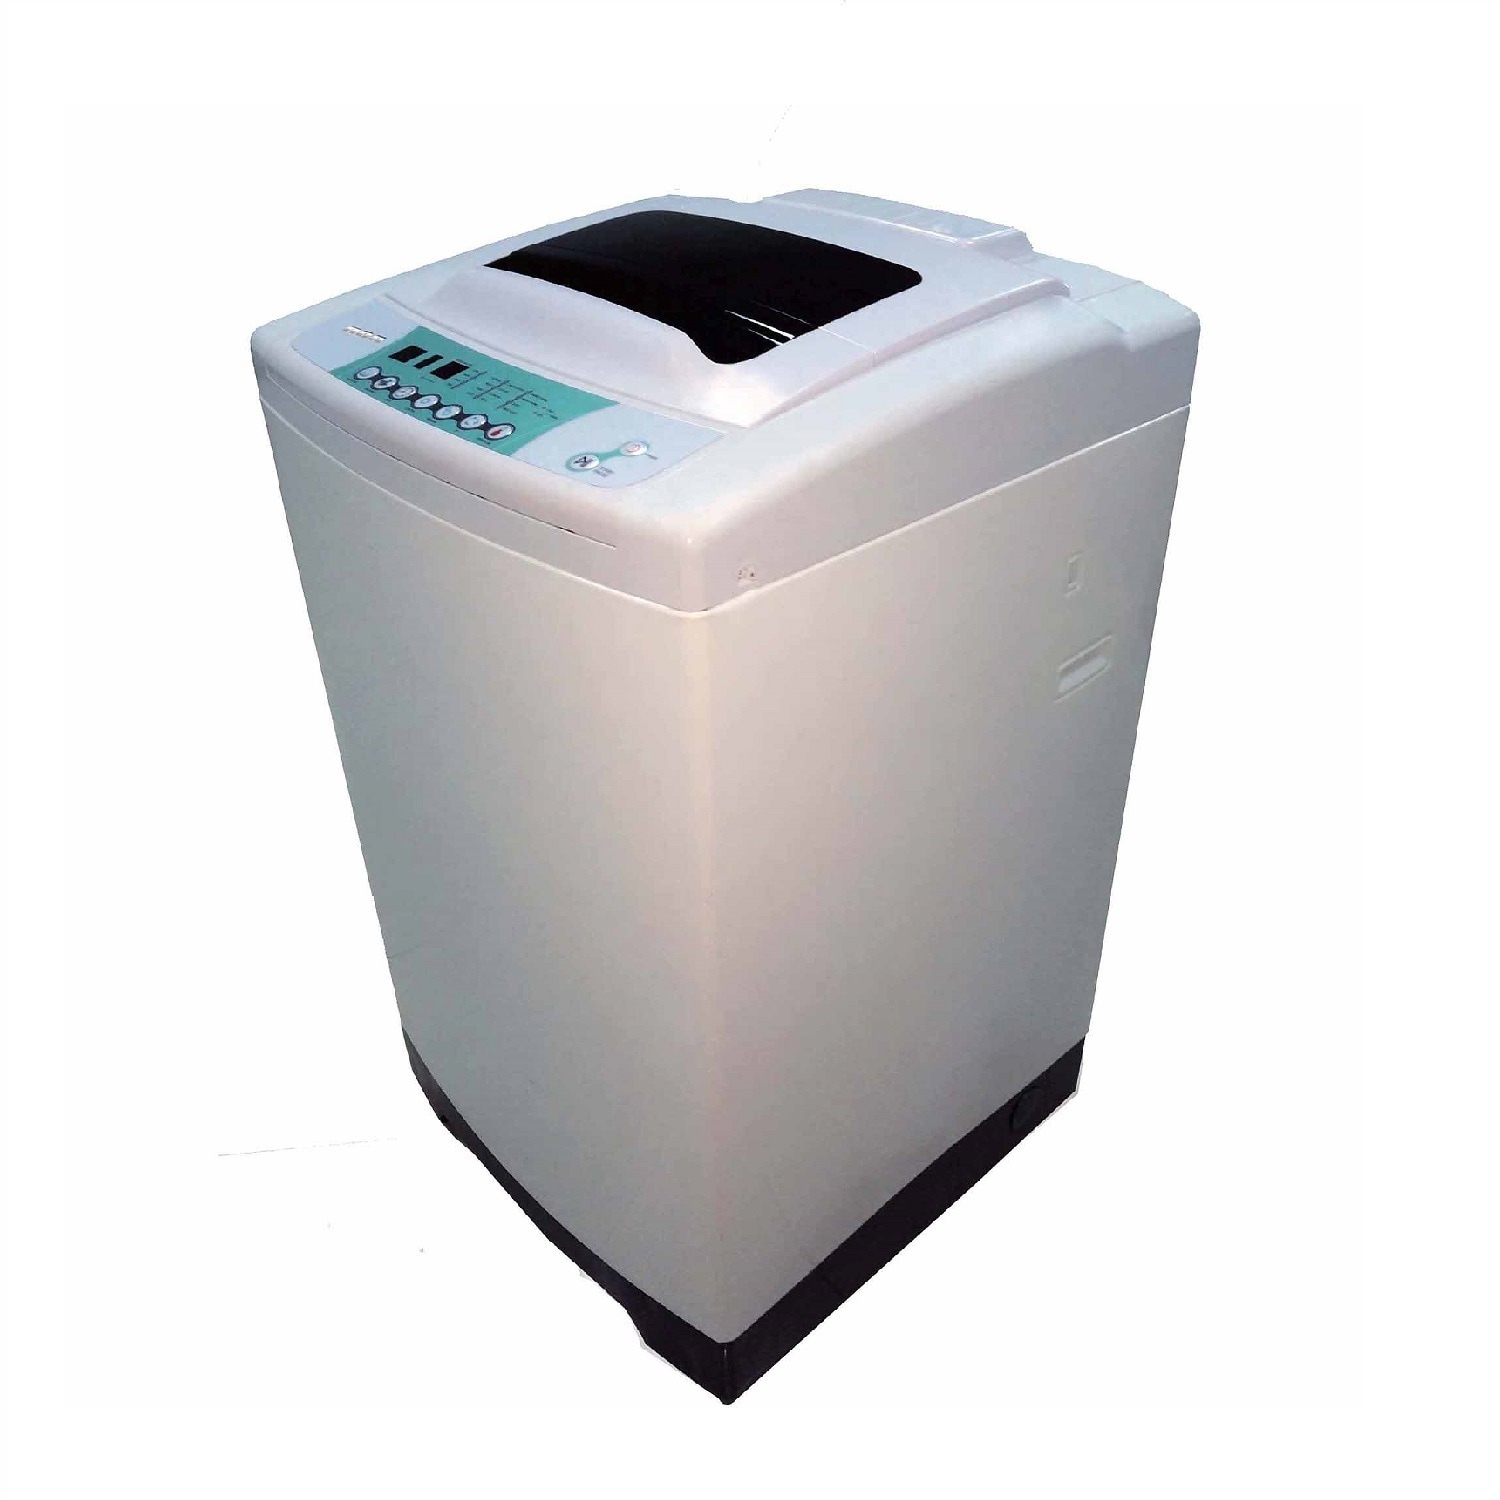 Igloo RCA 3.0 Cu. Ft. Portable Washer, Silver stainless s...